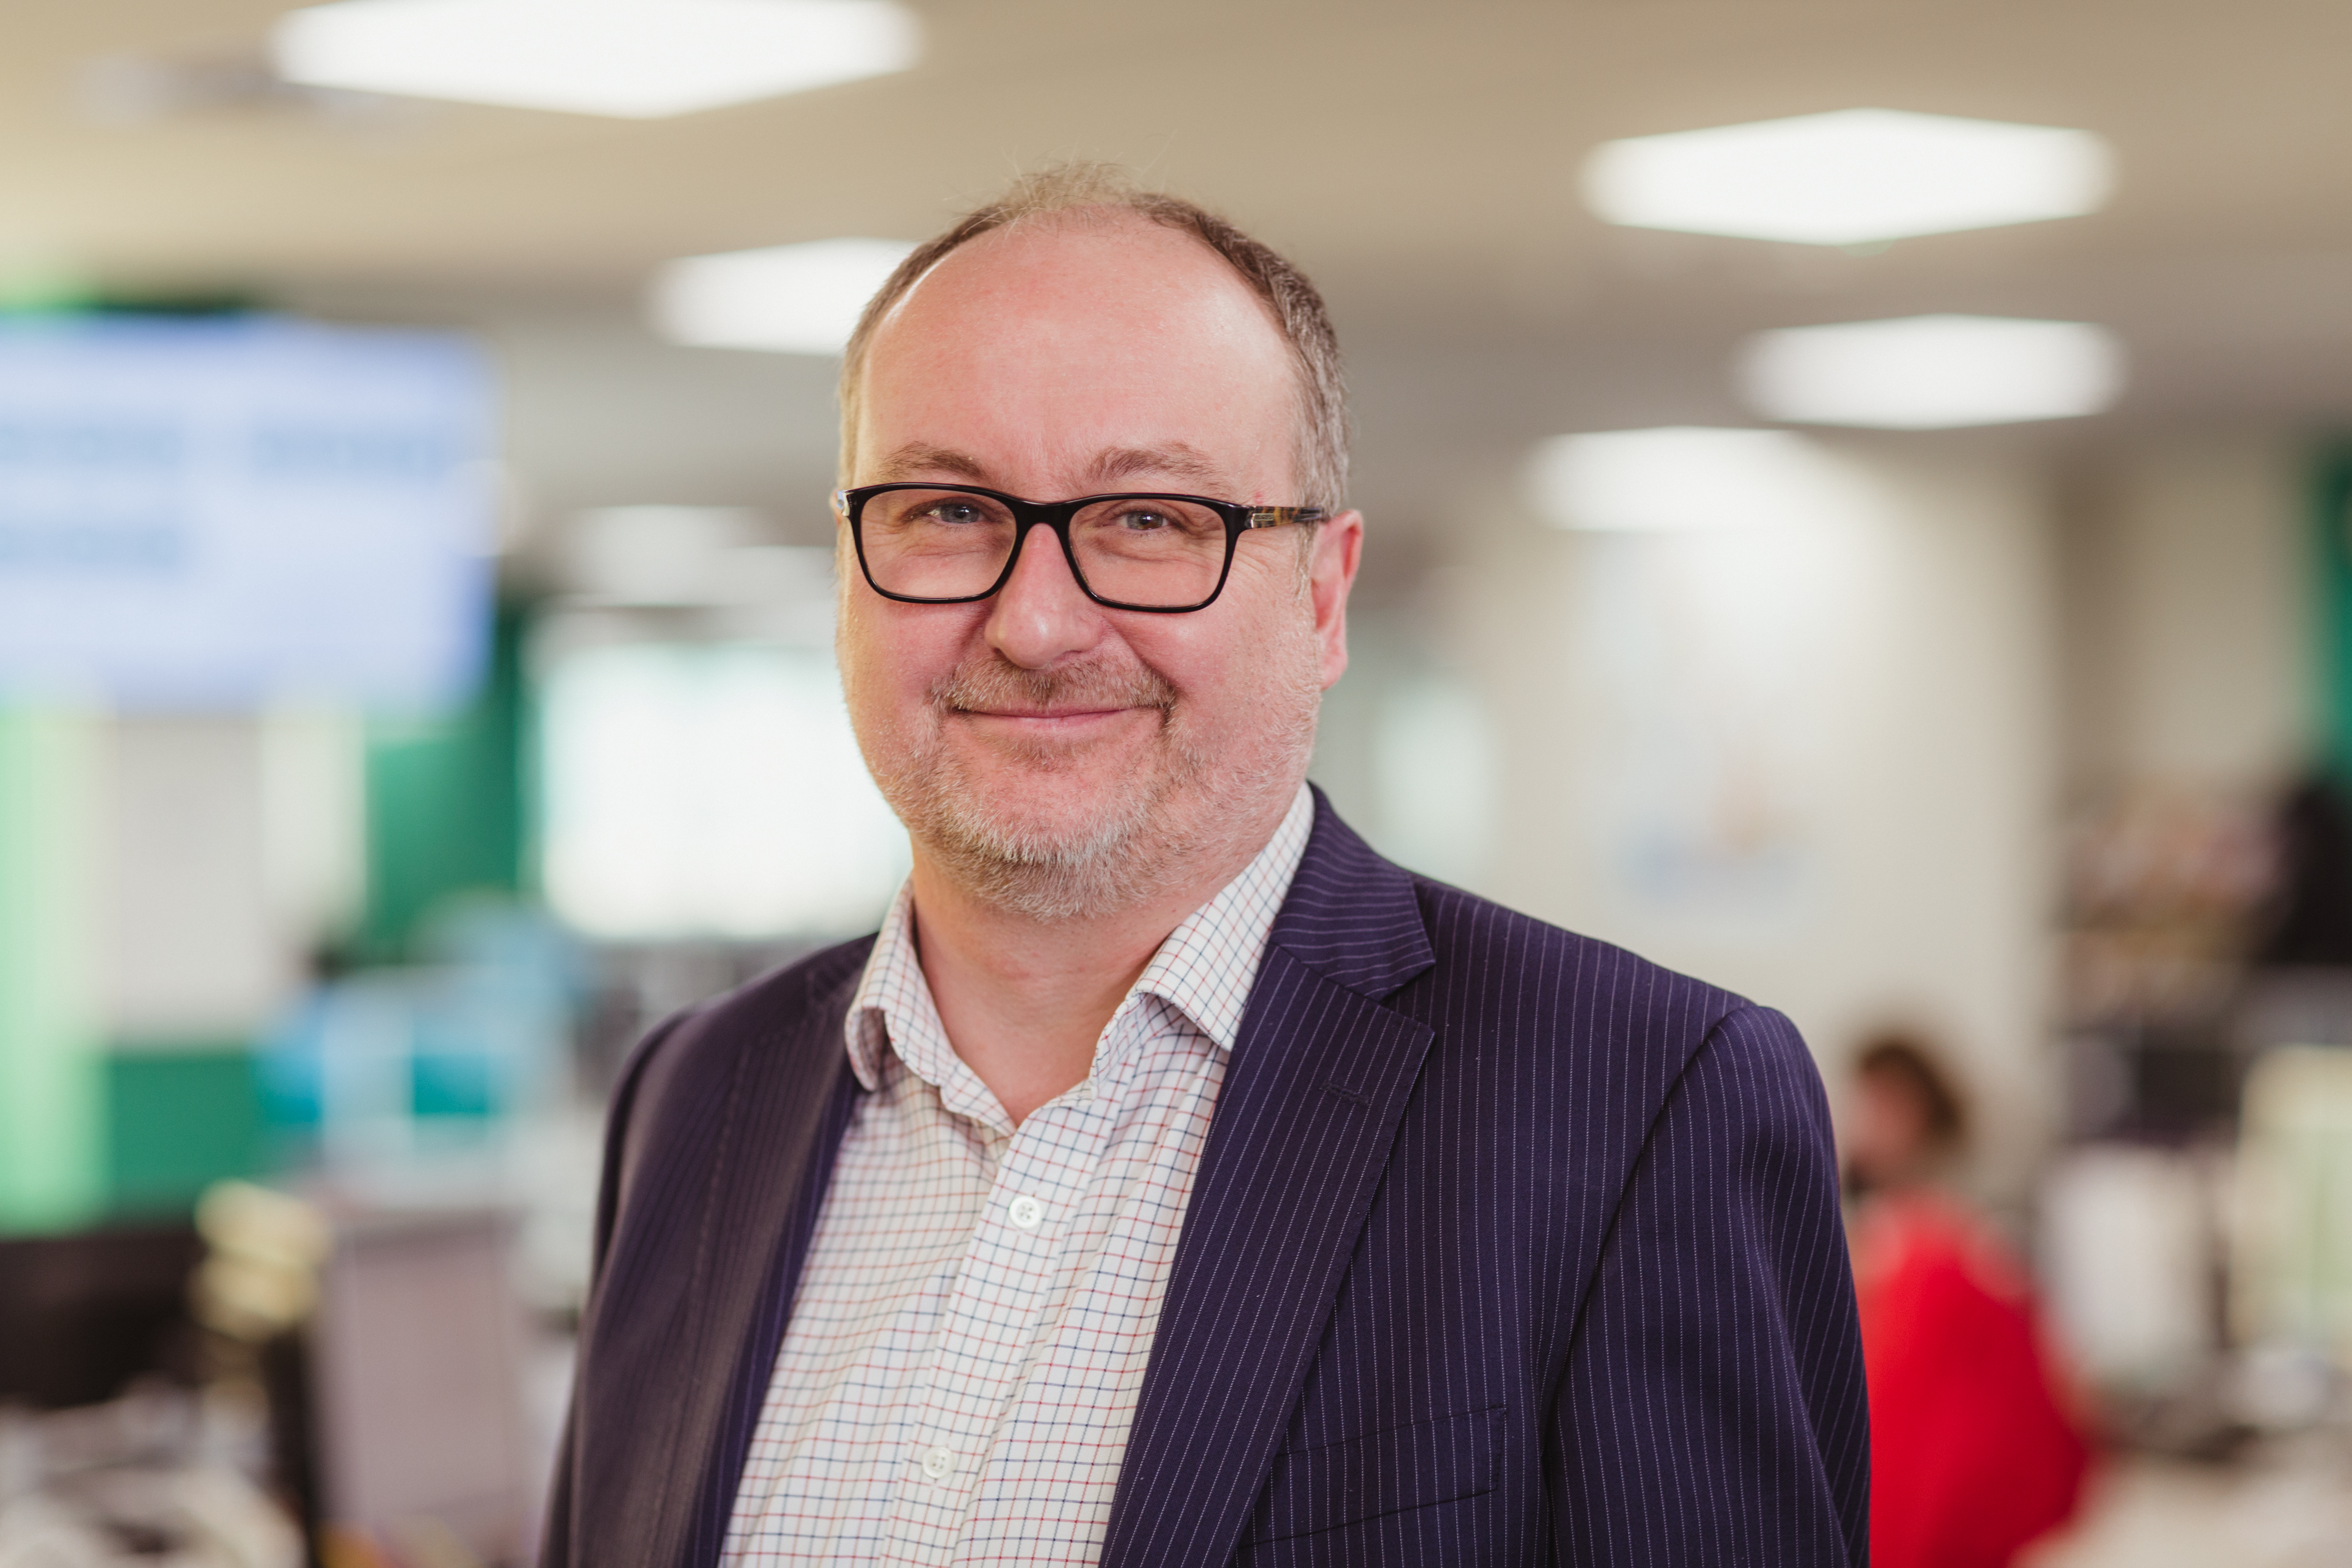 BNP Paribas Leasing Solutions UK appoints new Head of Technology Solutions